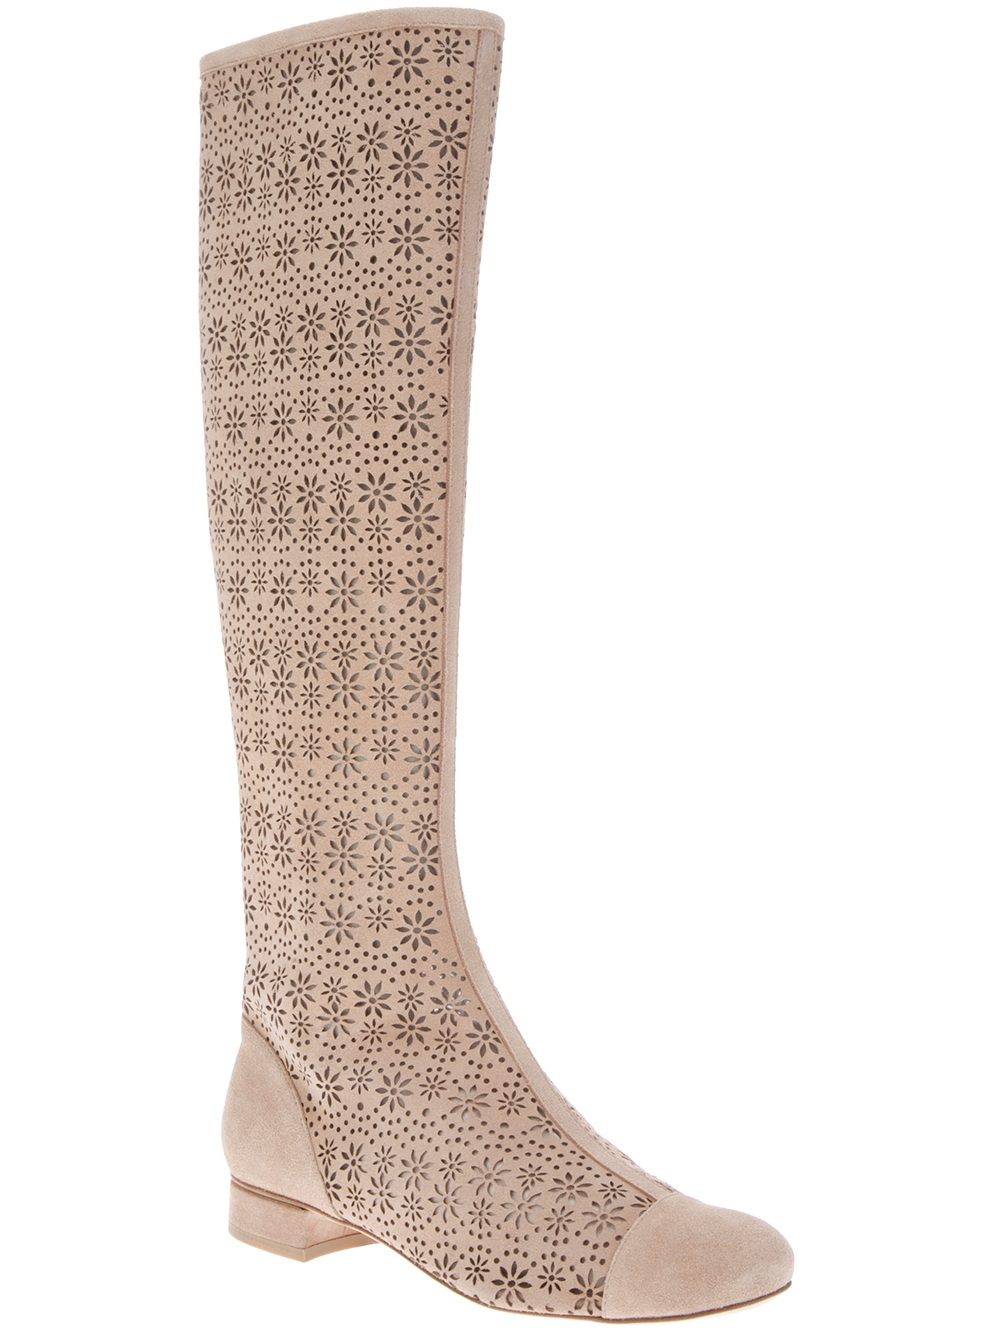 Boutique Moschino Perforated Knee High Boot in Nude (Natural)